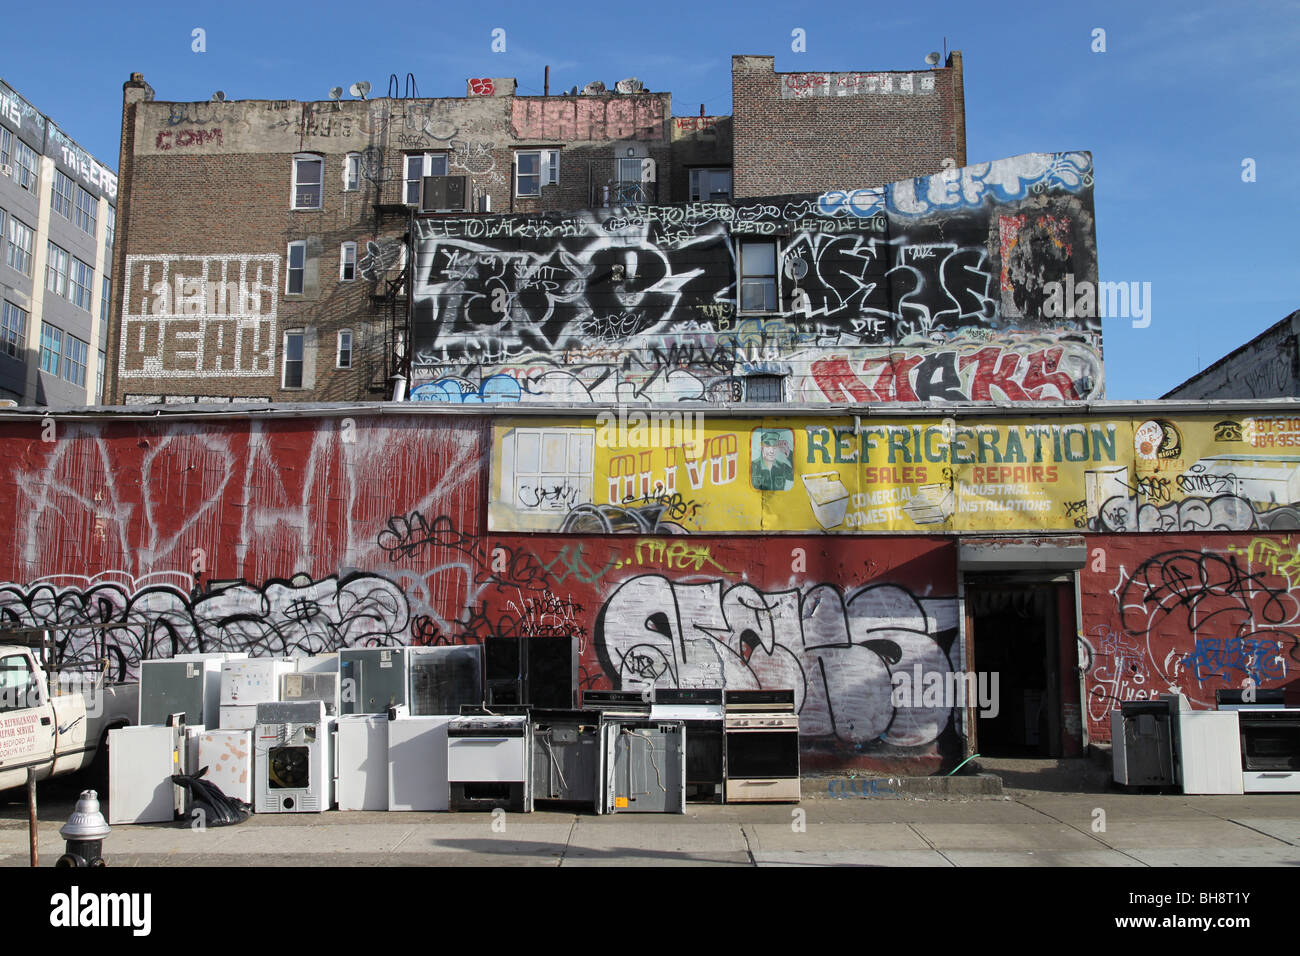 New york slum stock photos new york slum stock images for Art and craft store in brooklyn ny